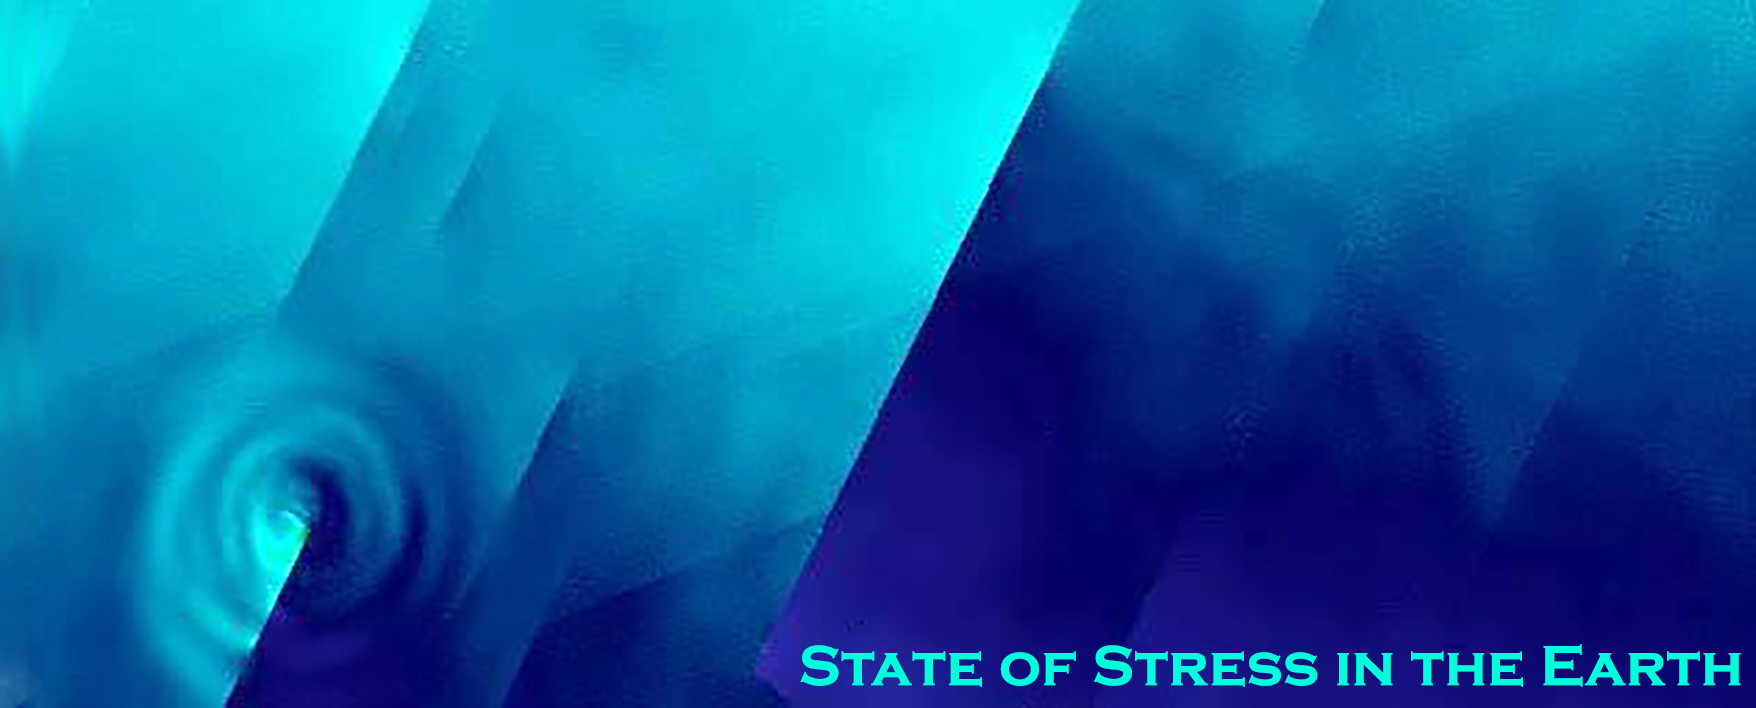 State of Stress in the Earth